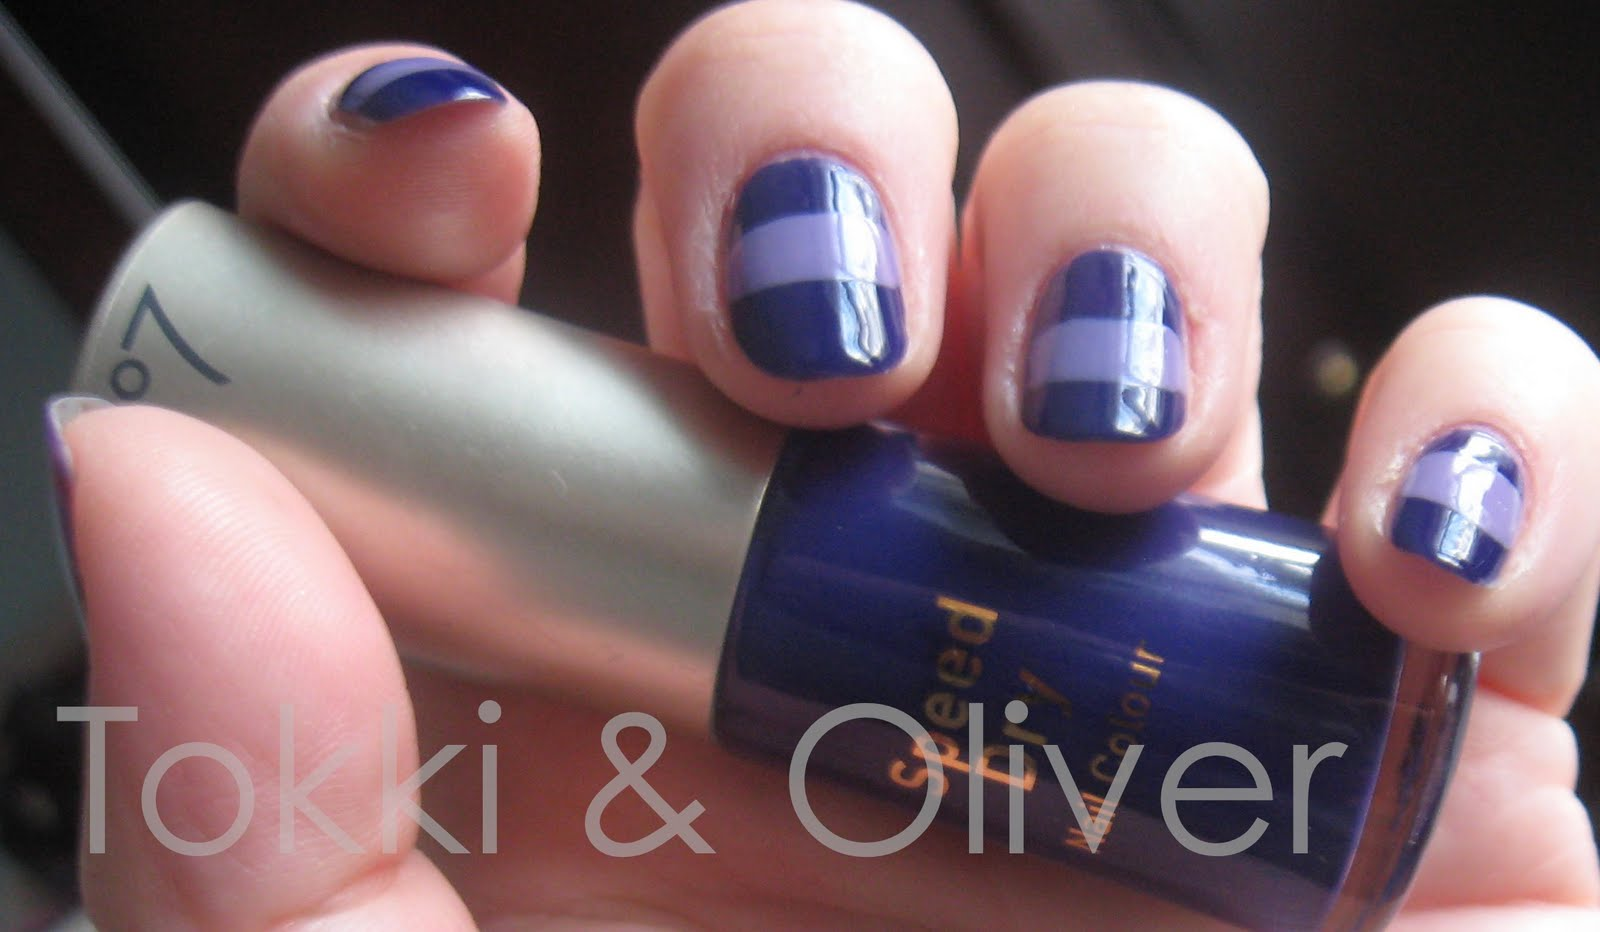 Tokki and Oliver: NOTD: No 7 Violetta